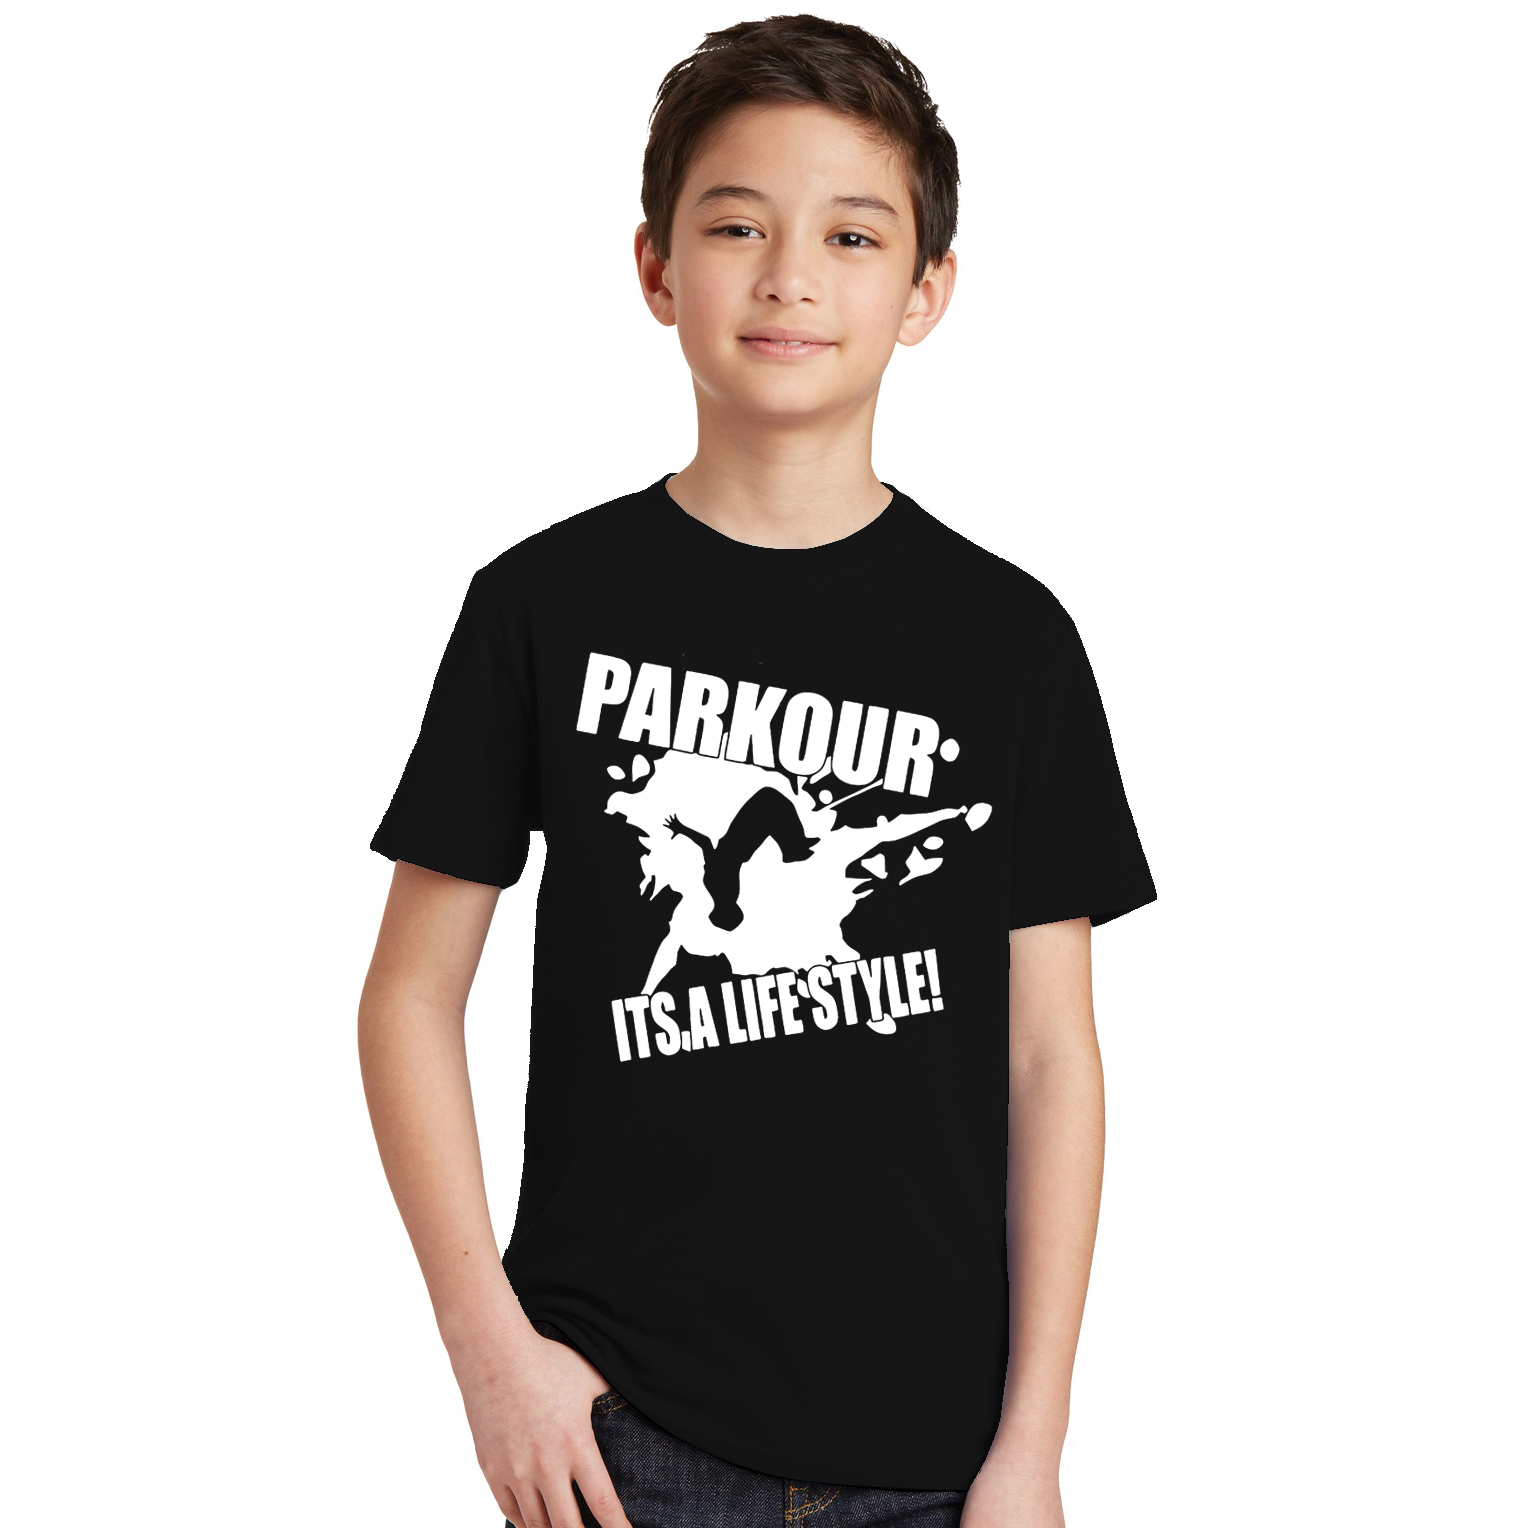 Cotton Shirt Parkour Teen Short-Sleeve Casual O-Neck Brand Its Lifestyle